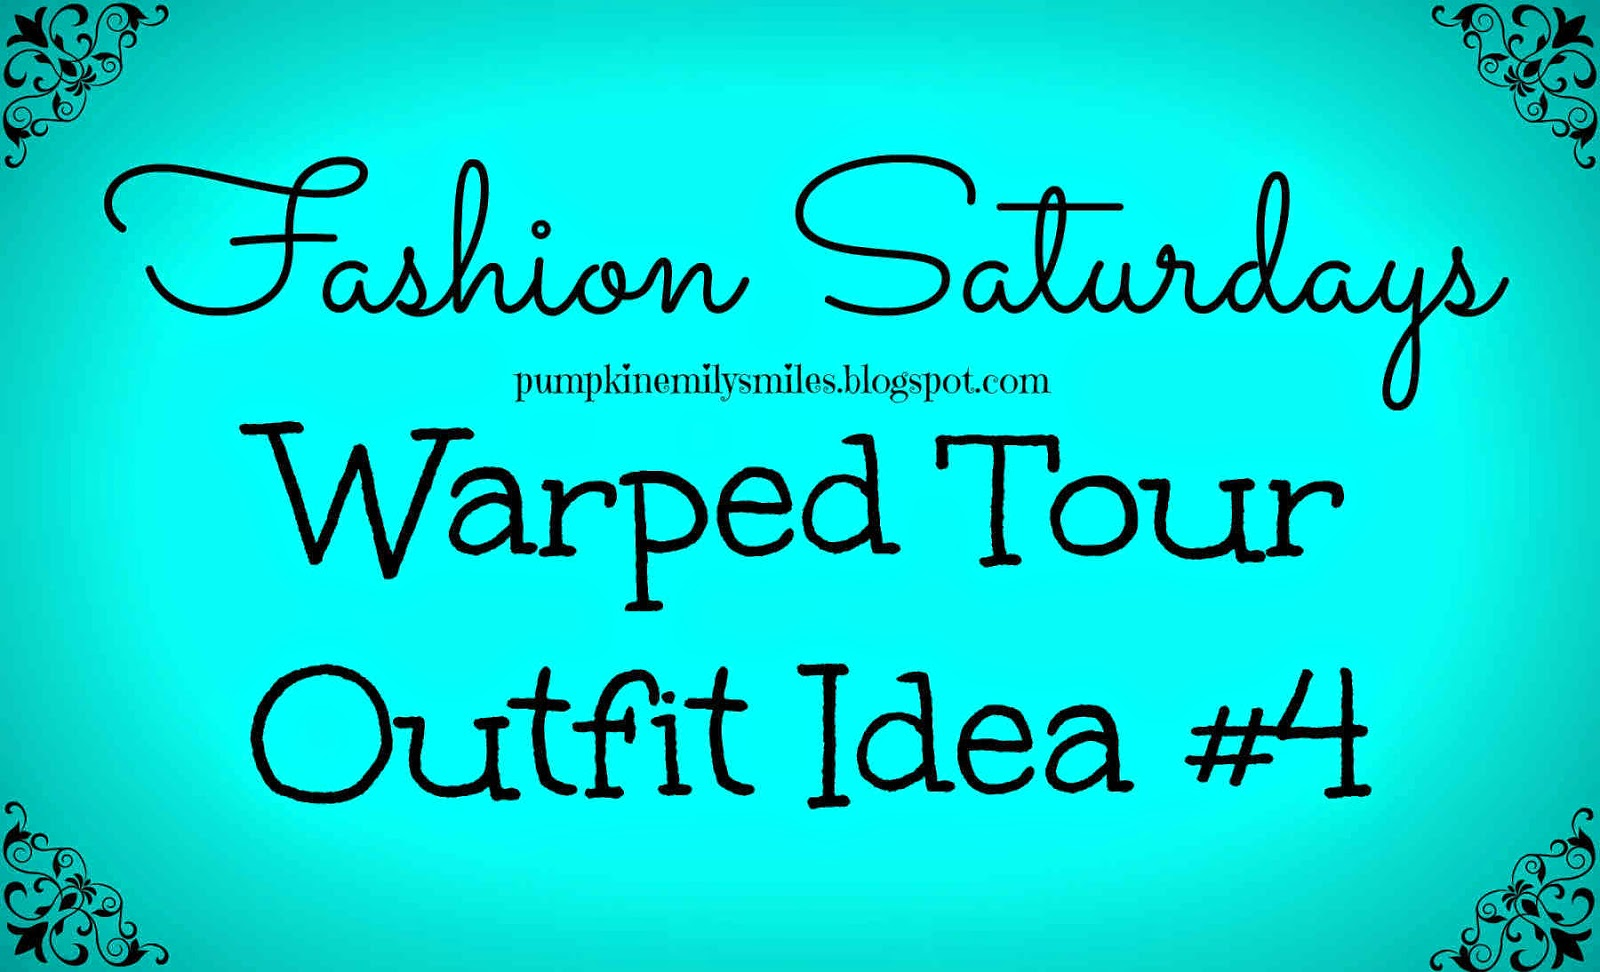 Vans Warped Tour 2014 Outfit Idea #4 Fashion Saturdays